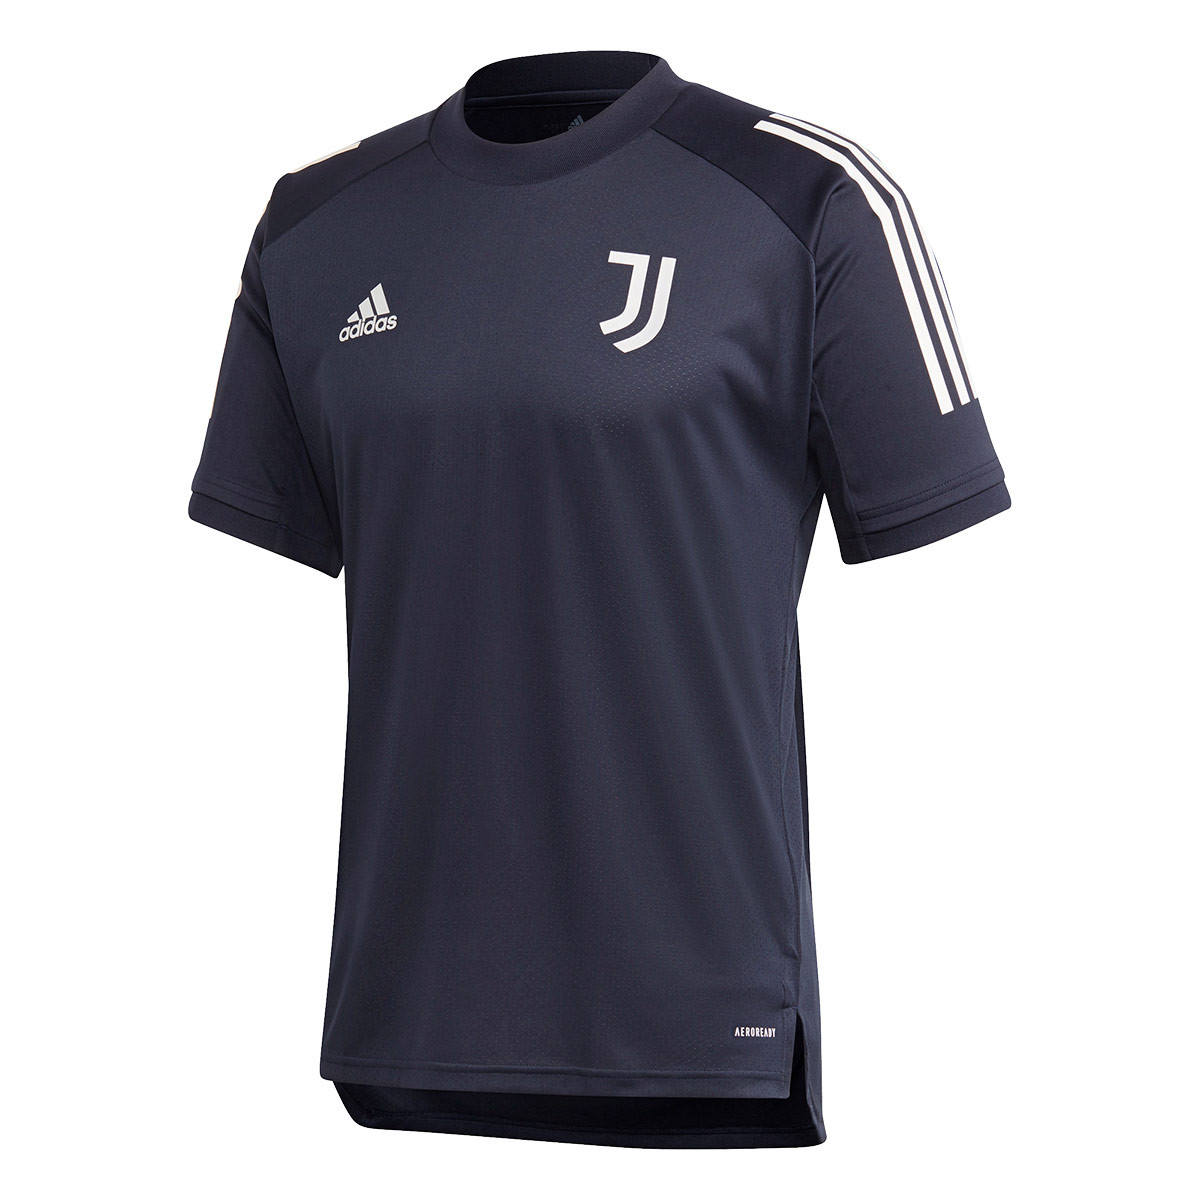 jersey adidas juventus training 2020 2021 legend ink orbit grey football store futbol emotion adidas juventus training 2020 2021 jersey